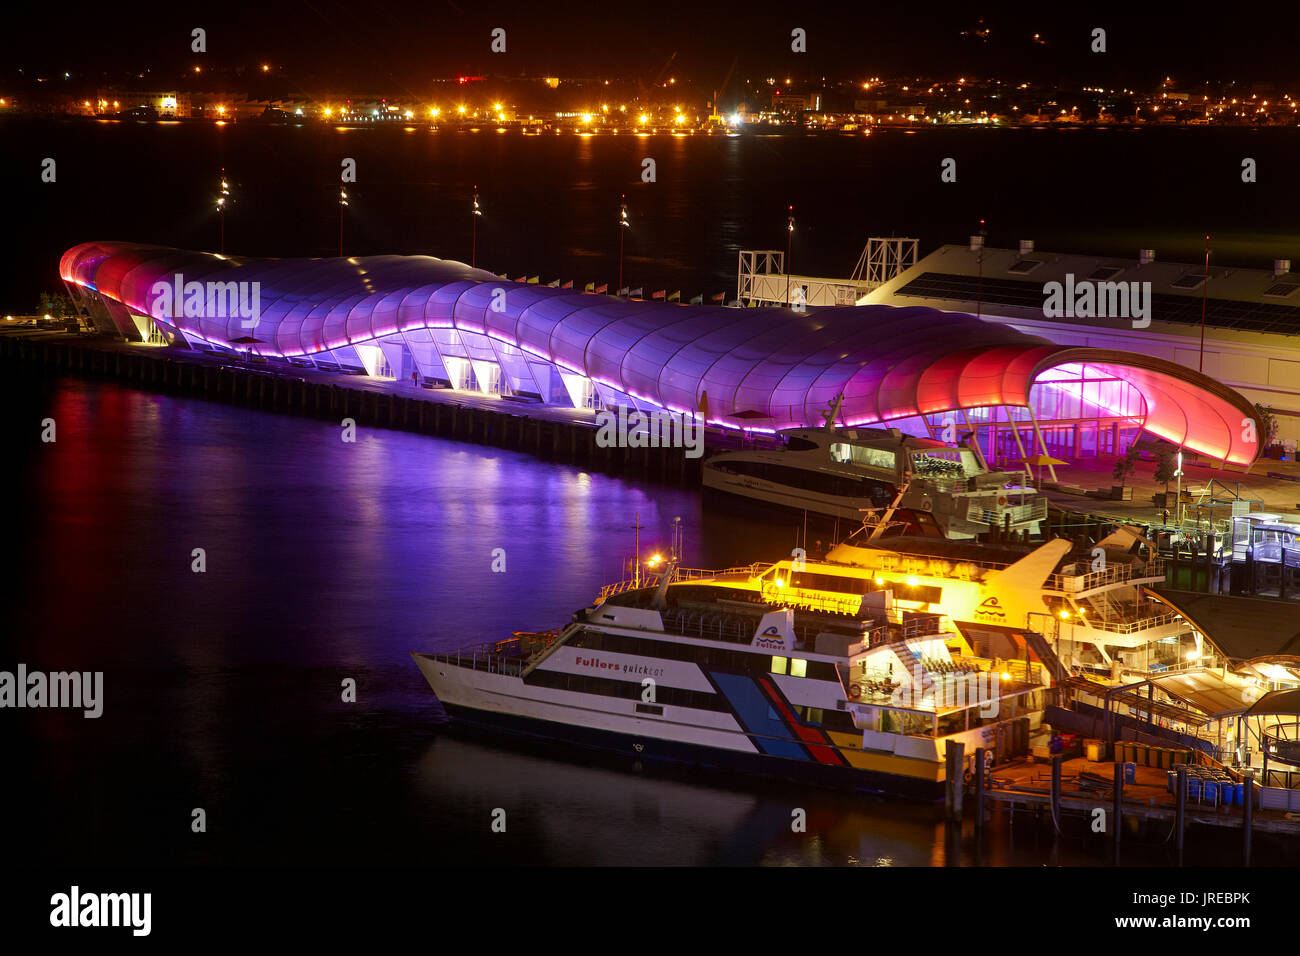 Colourful lighting on 'The Cloud' events building, Queens Wharf, Auckland, North Island, New Zealand - Stock Image